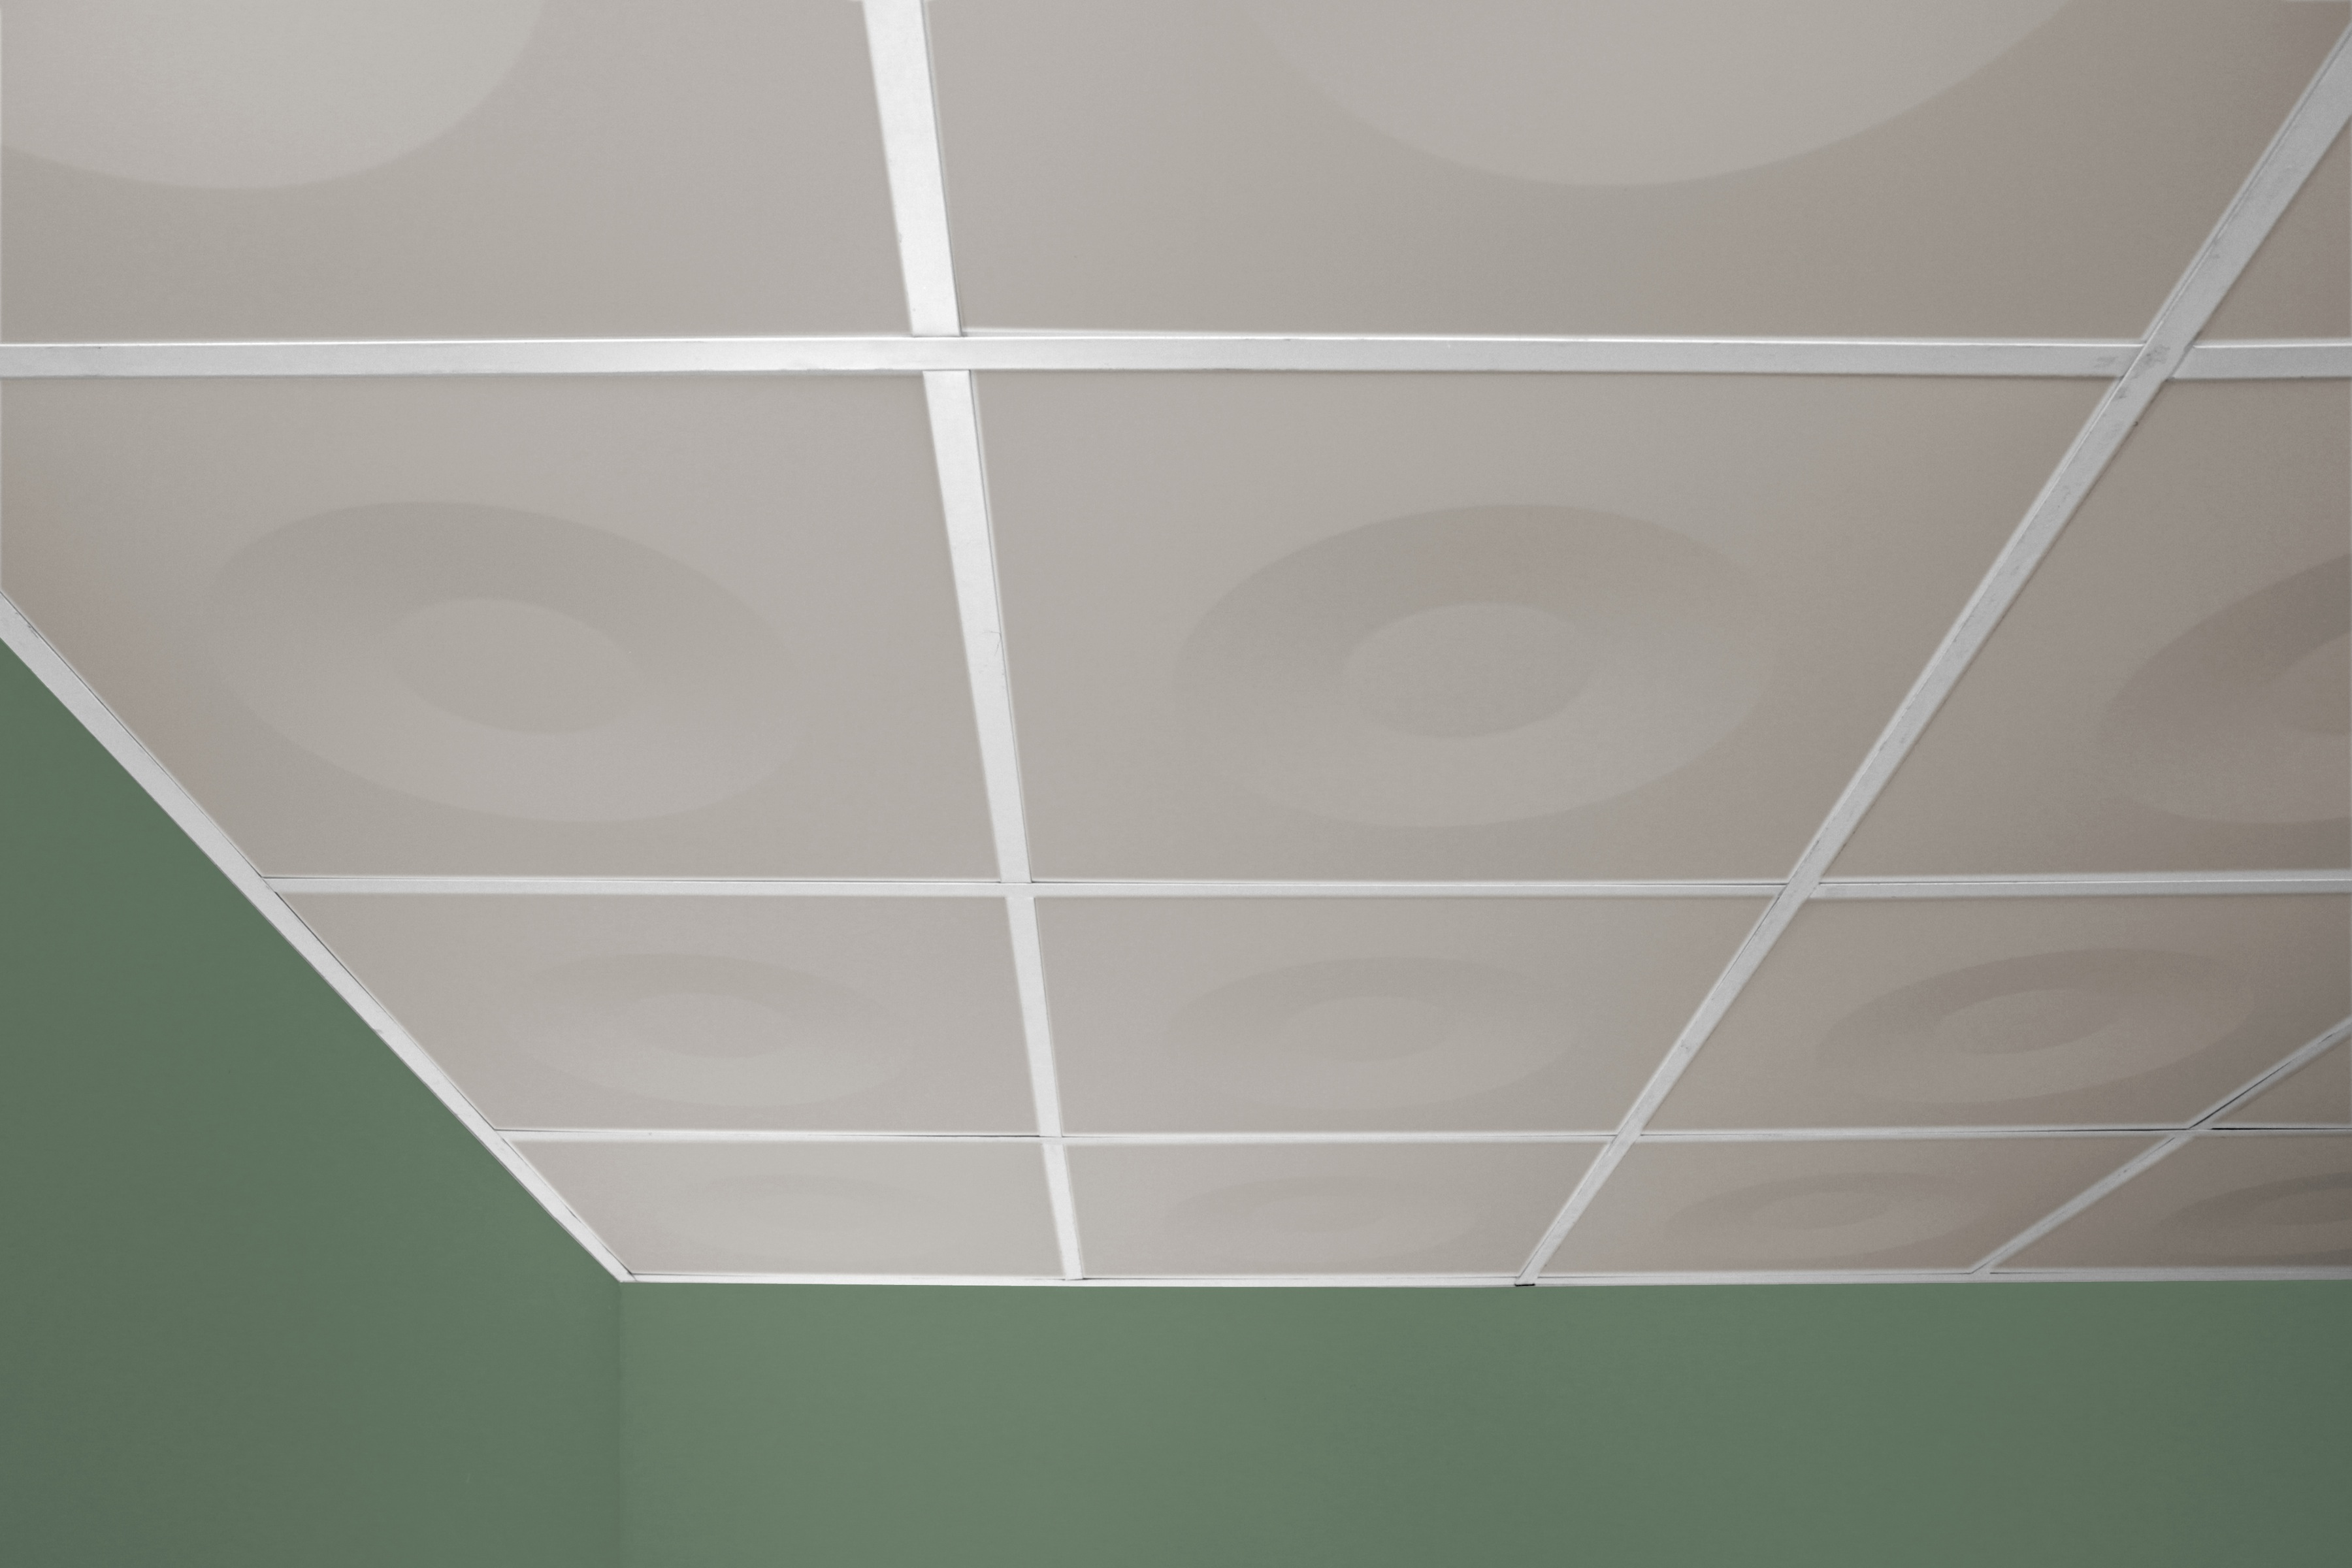 commercial kitchen ceiling tiles cheap sinks ceilume launches fda compliant culinary